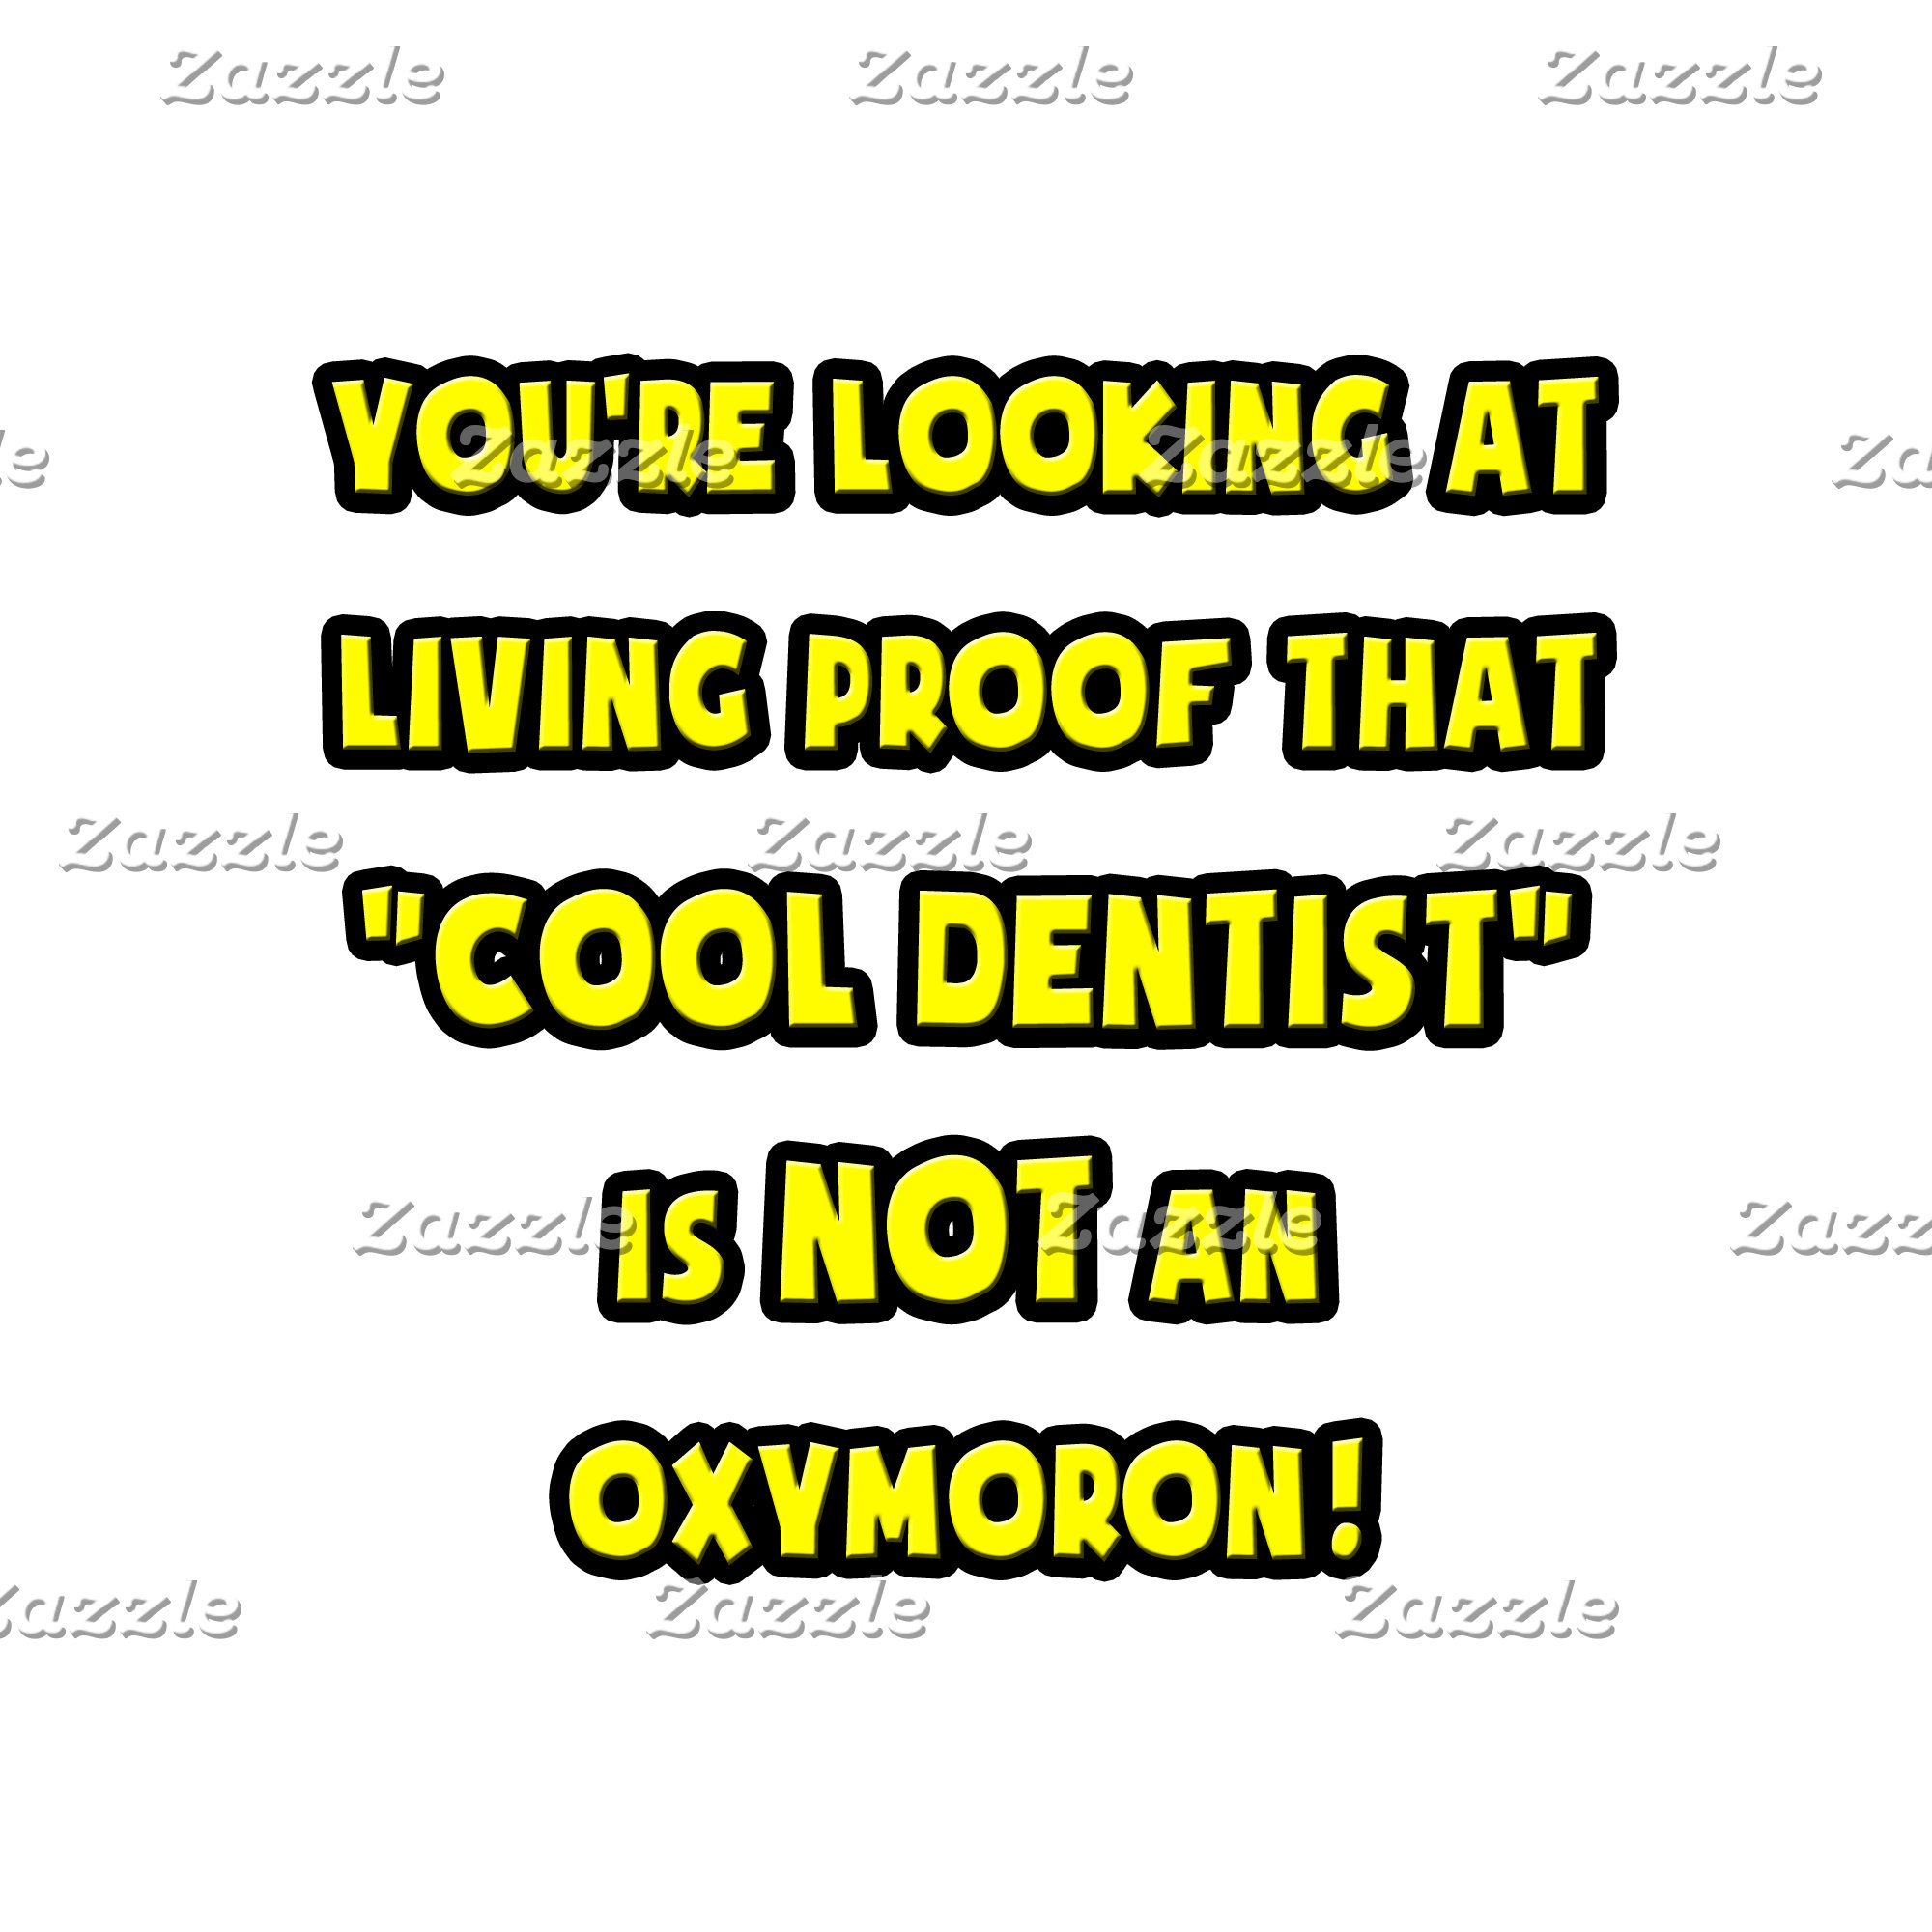 Cool Dentist Is NOT an Oxymoron